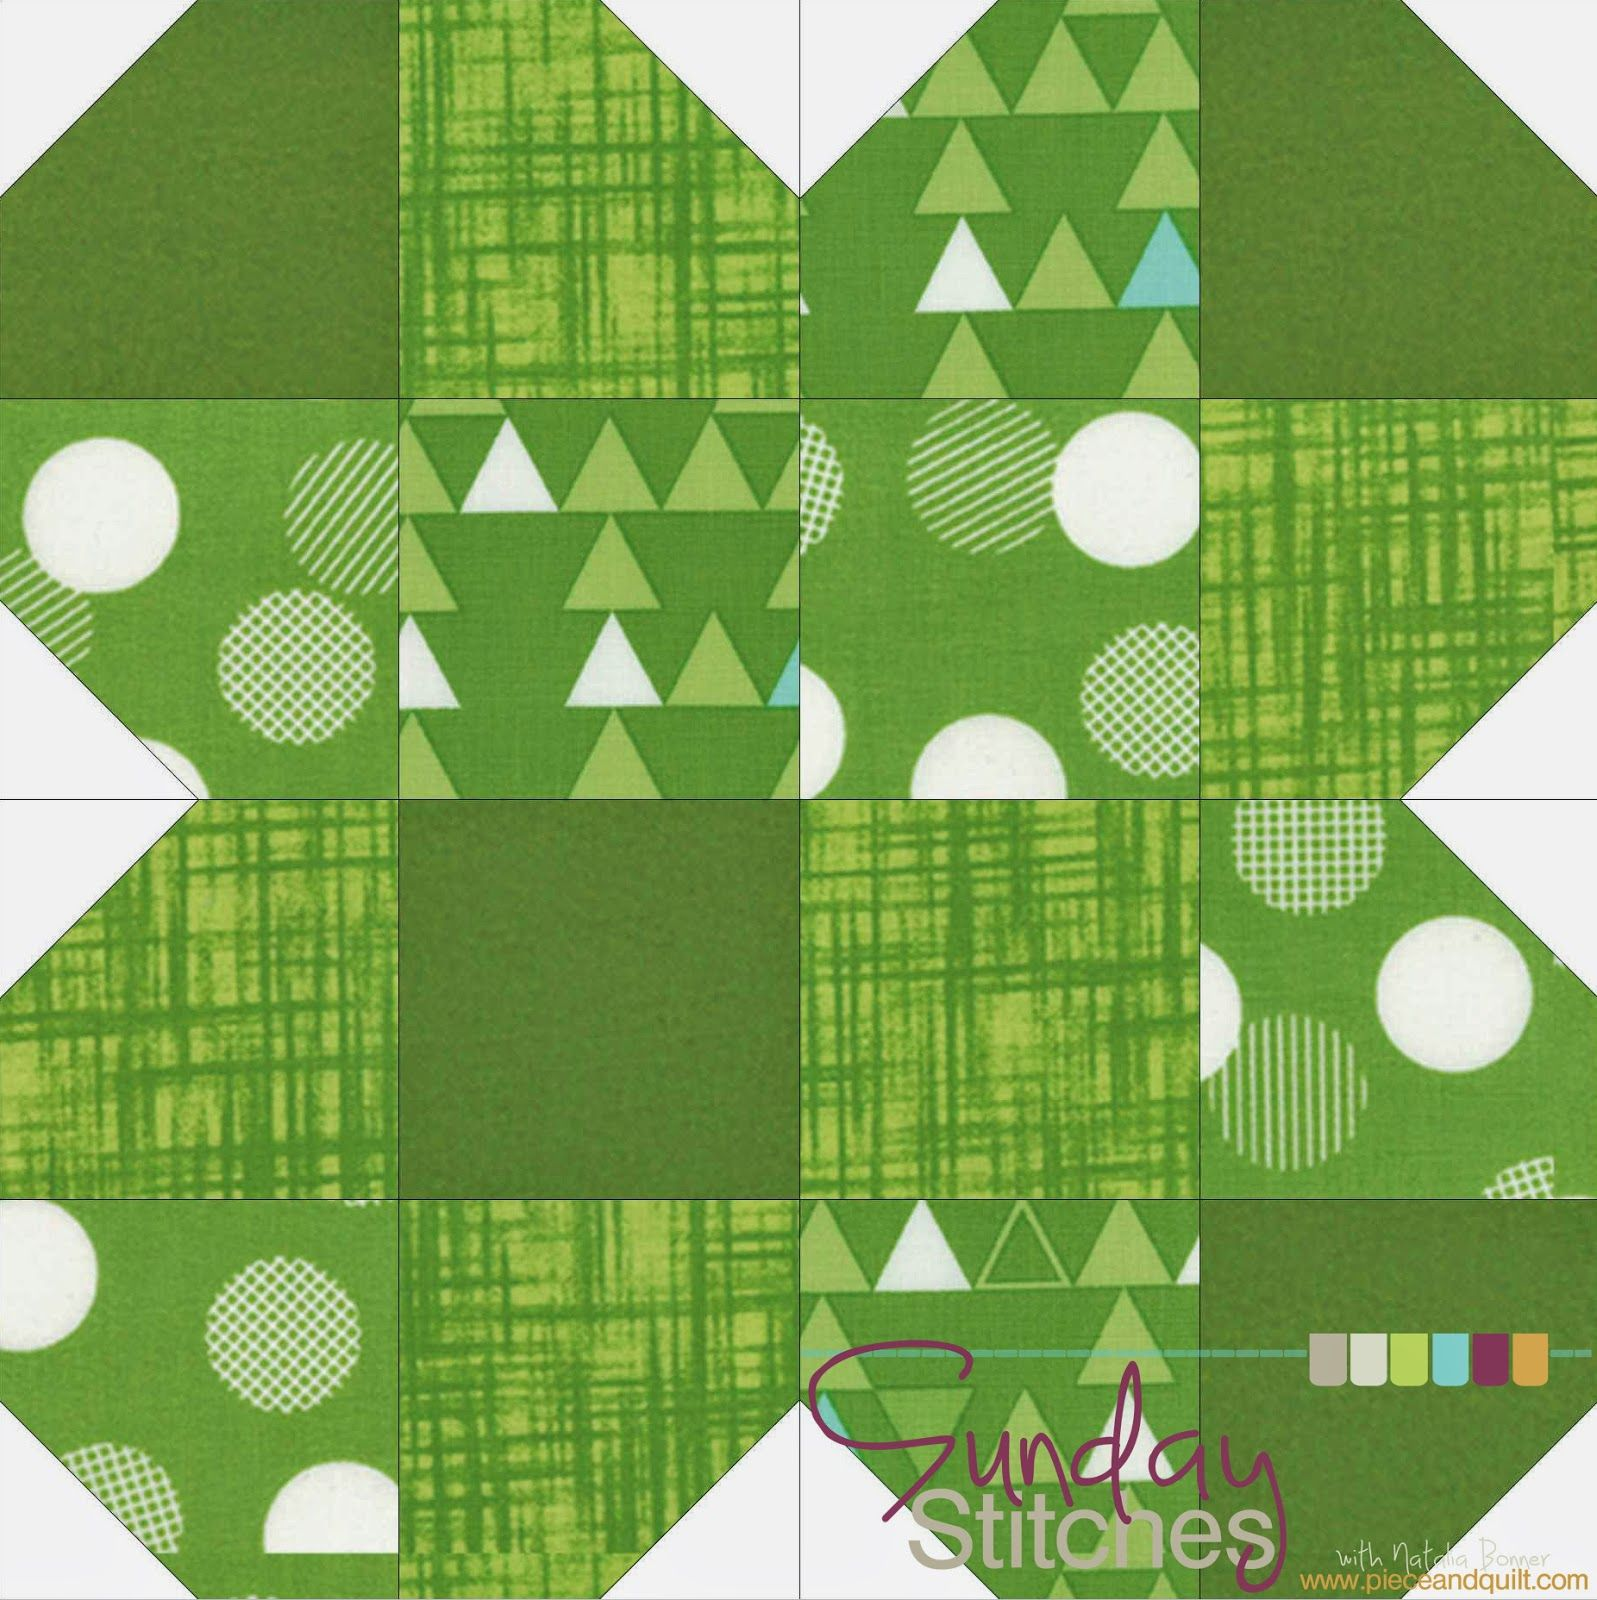 3/2016 : 4-H clover block for my Farm Girl Vintage quilt! Came ... : clover quilting - Adamdwight.com